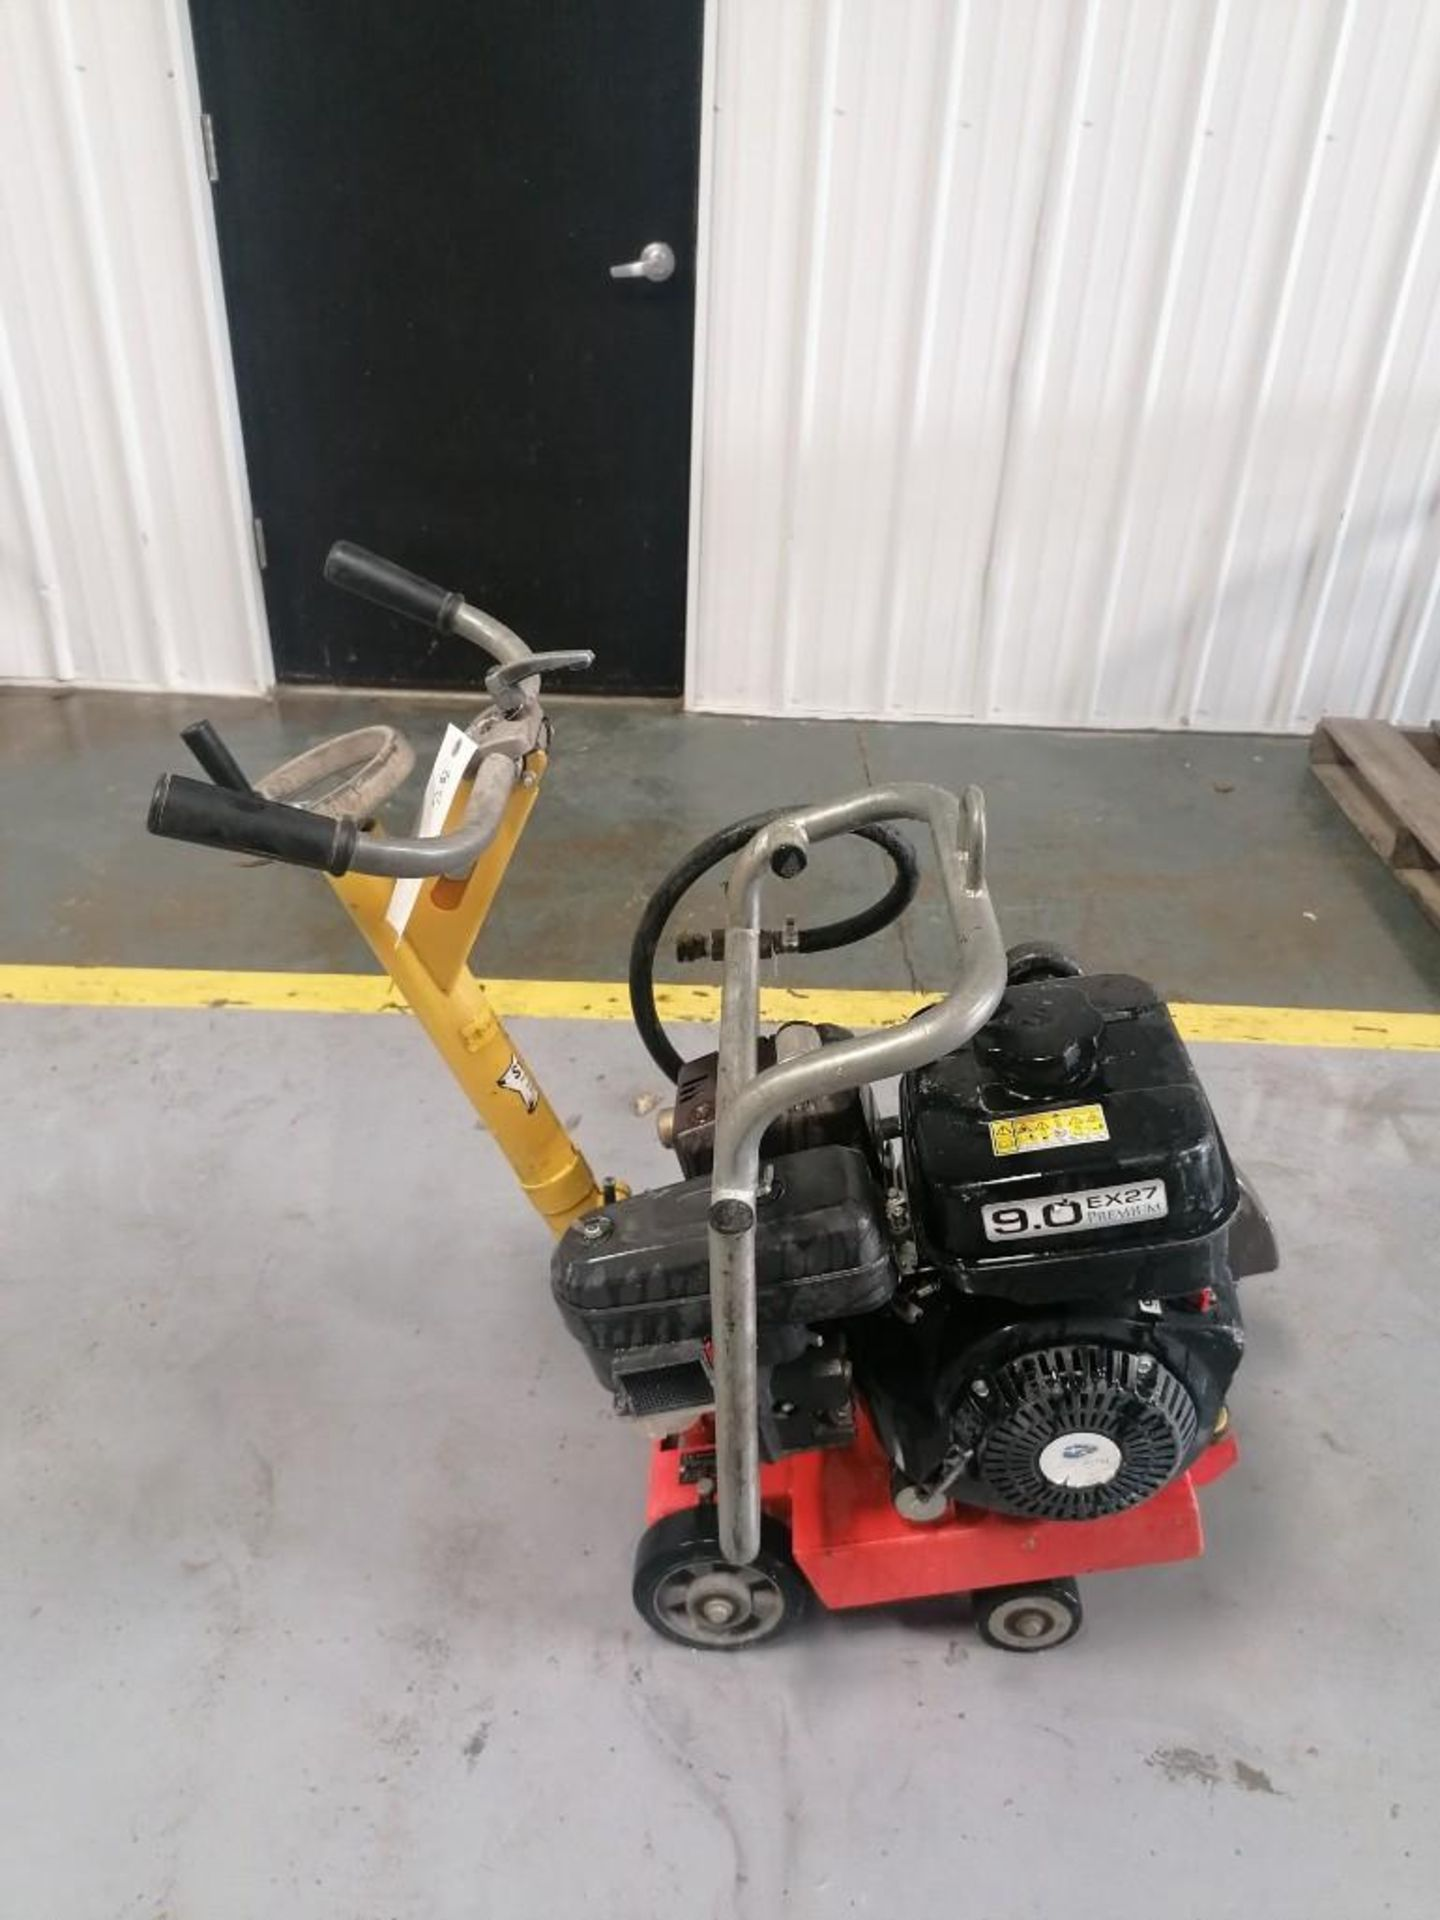 Lot 110 - (1) Husqvarna ES309 Concrete Saw with Subaru 9.0 EX27 Motor. Located at 301 E Henry Street, Mt.